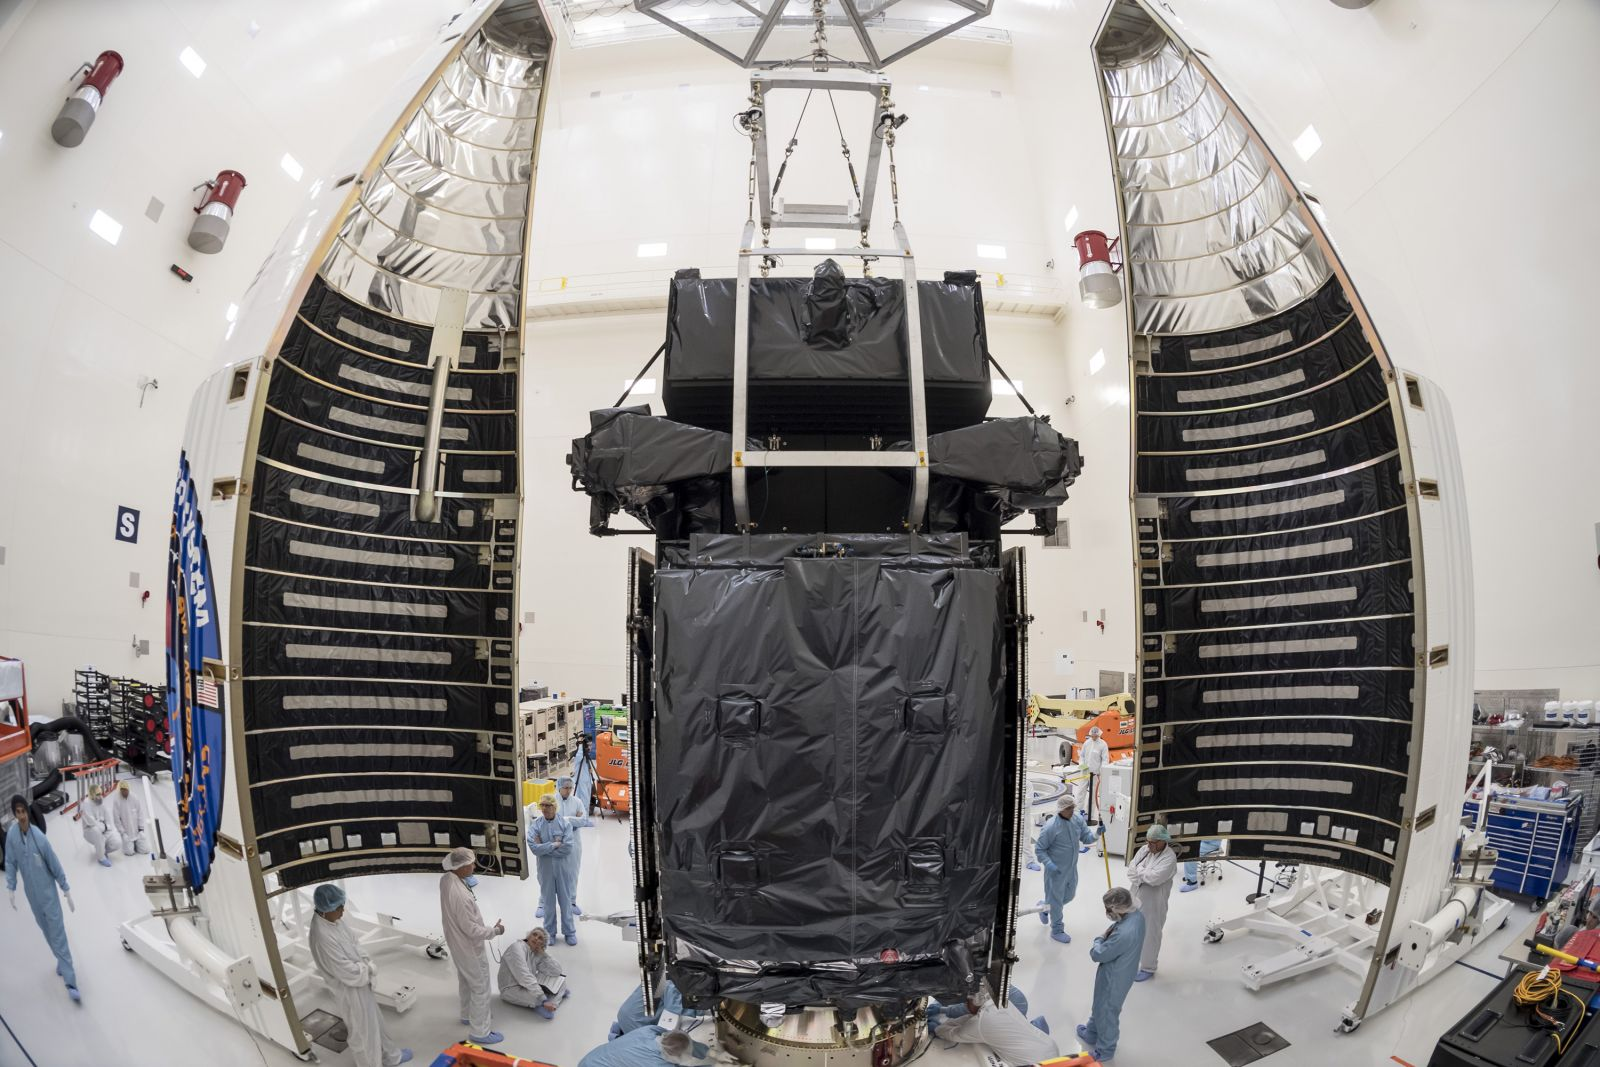 The SBIRS GEO-4 spacecraft prior to launch. Photo Credit: Lockheed Martin